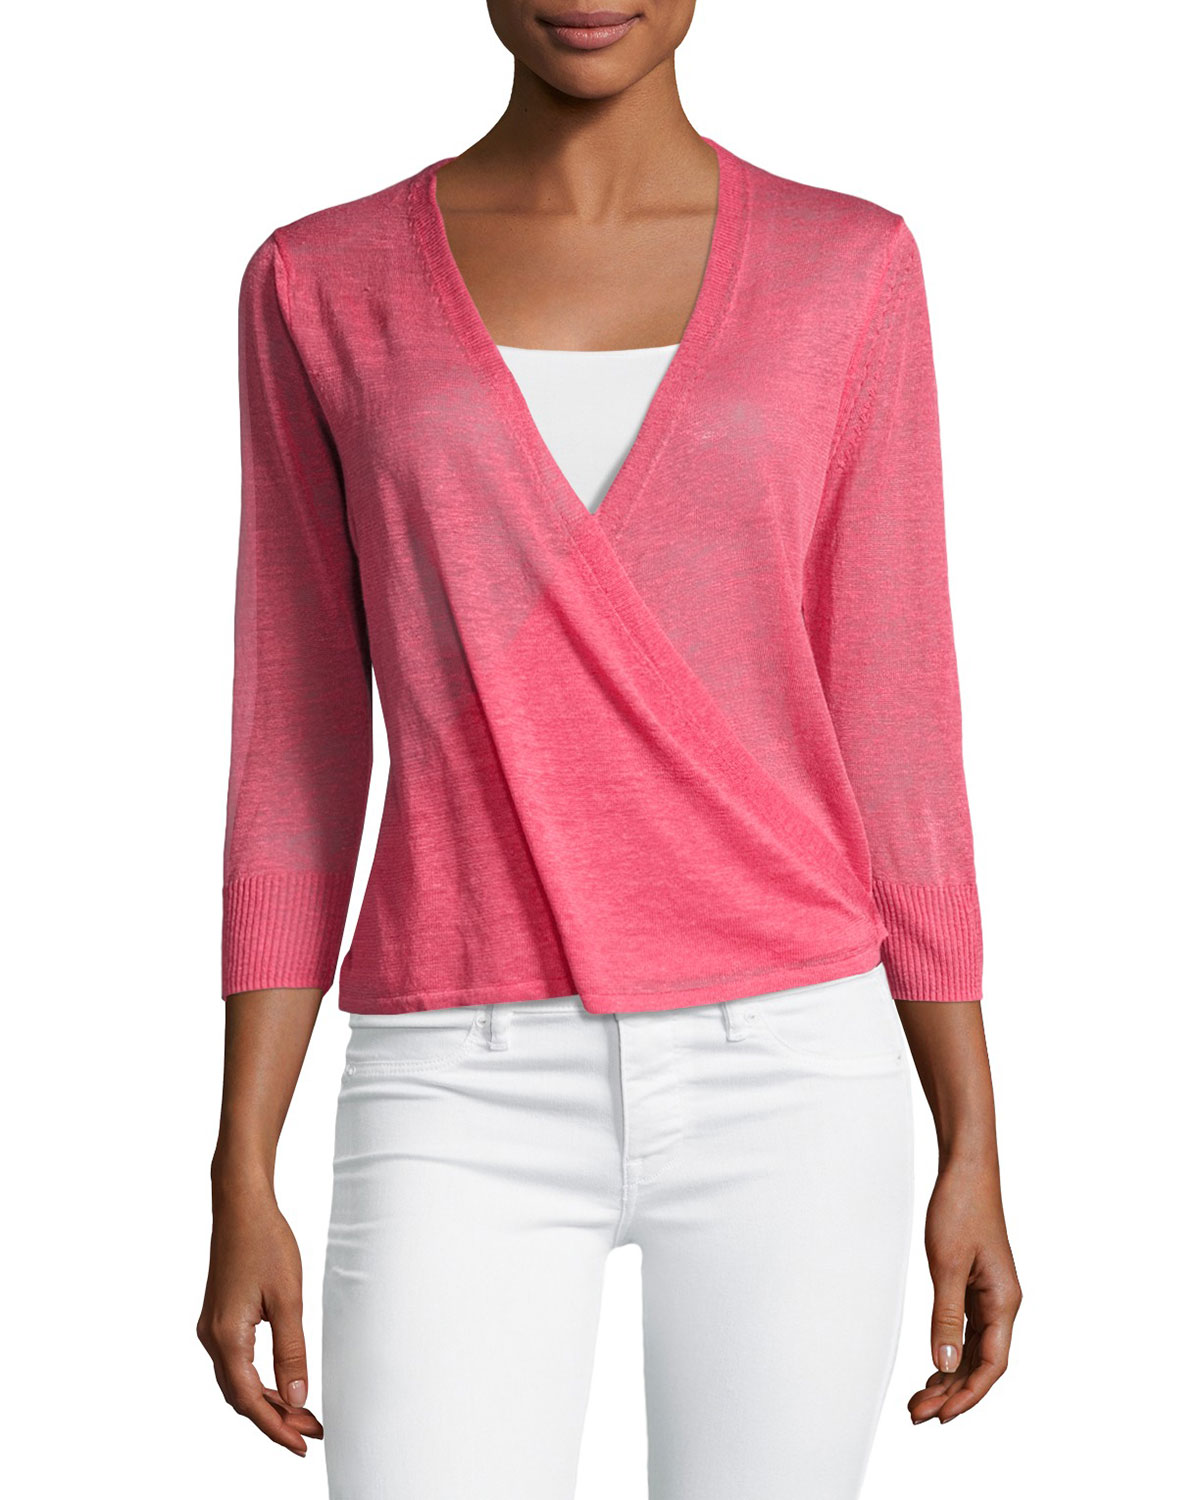 4-Way 3/4-Sleeve Cardigan, Pink